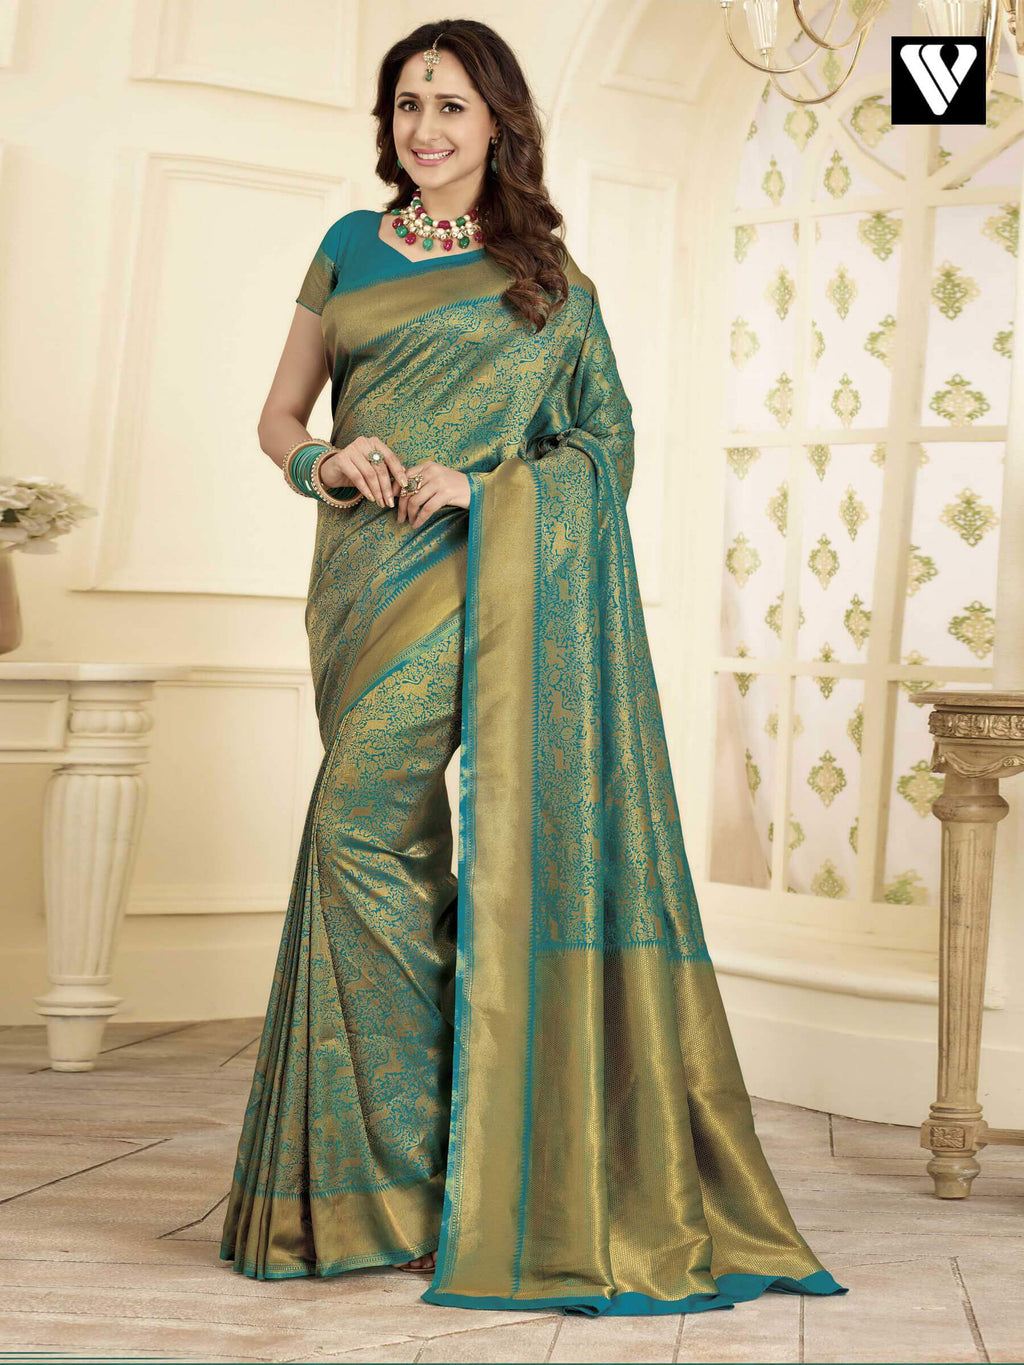 Wedding Wear Banarasi Art Silk Sarees In Green Gold